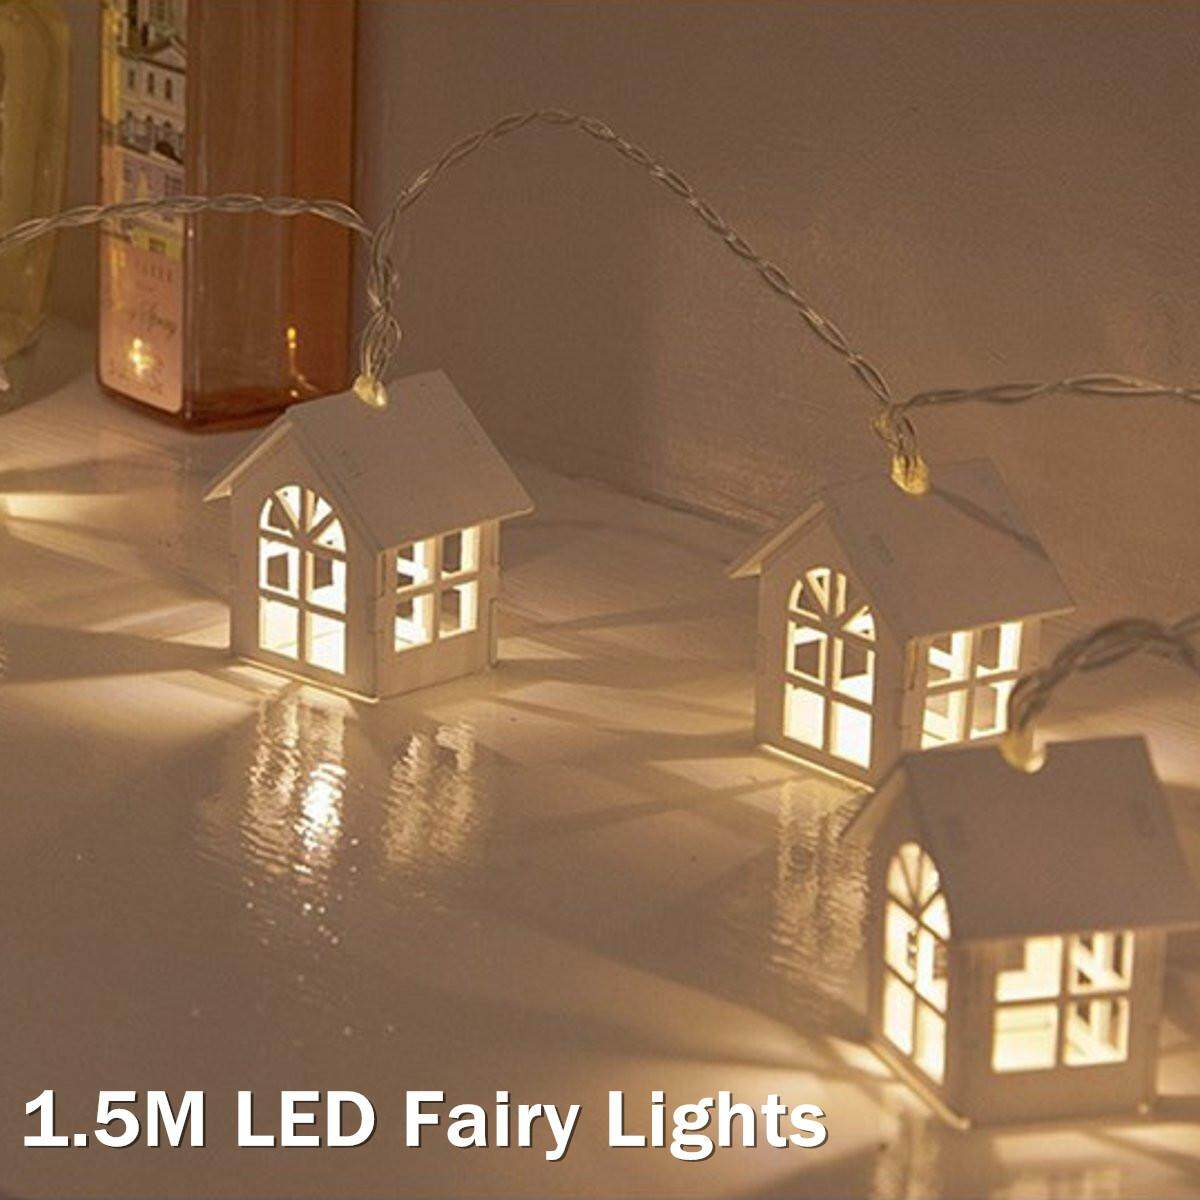 1.5m LED Fairy Lights House Shape String Lamp Wedding Party Festival Home Decor